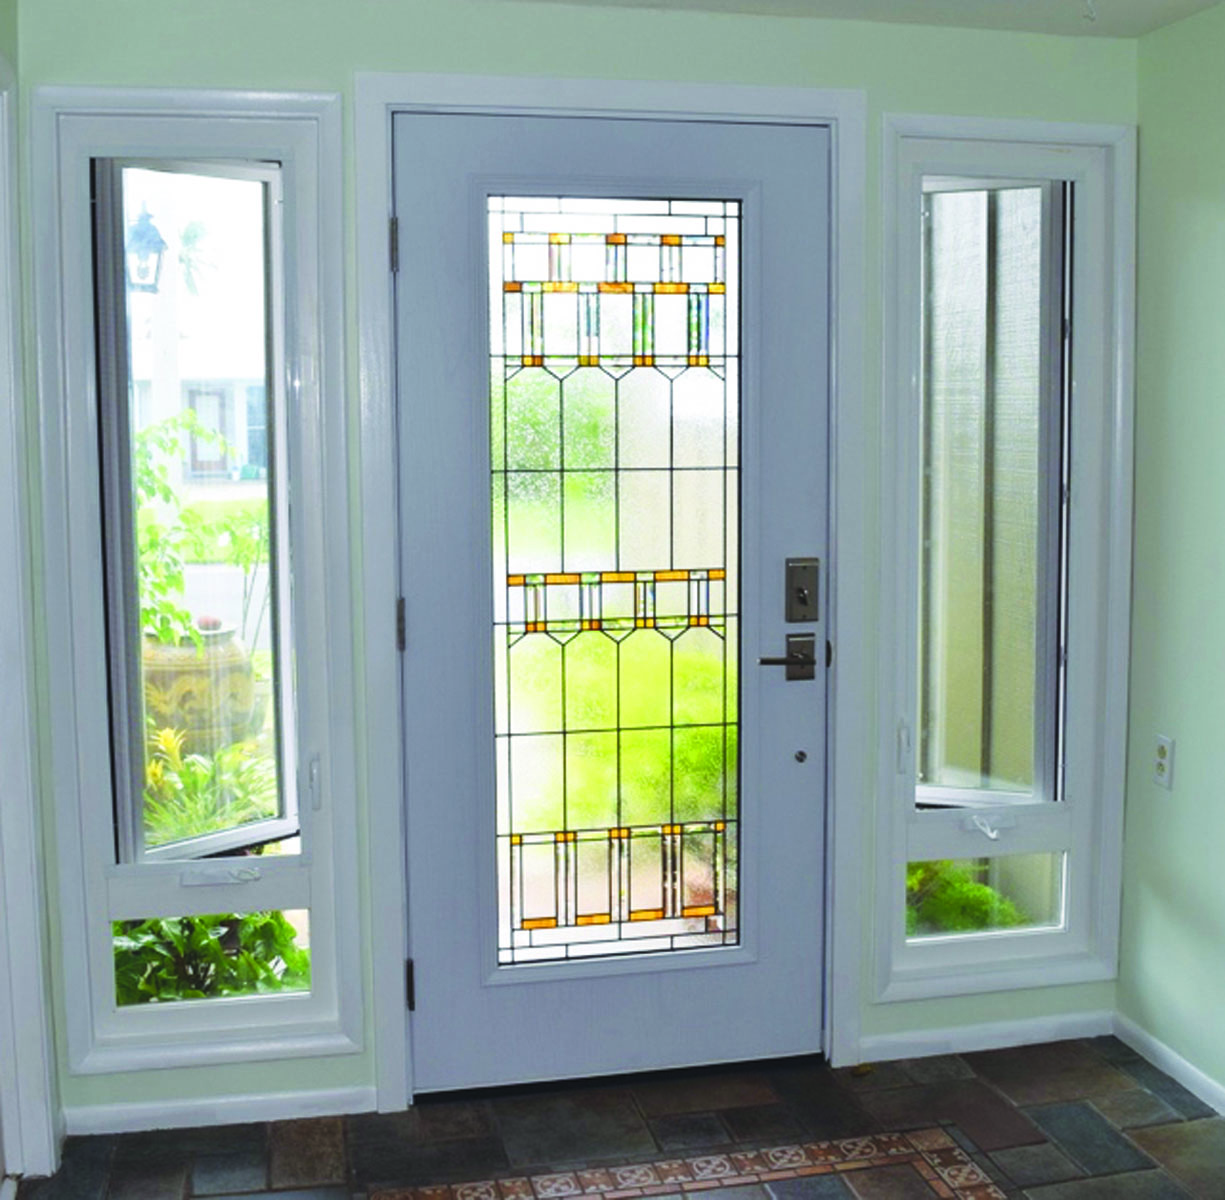 Entry Doors With Screens : Entry doors security screens discount windows custom